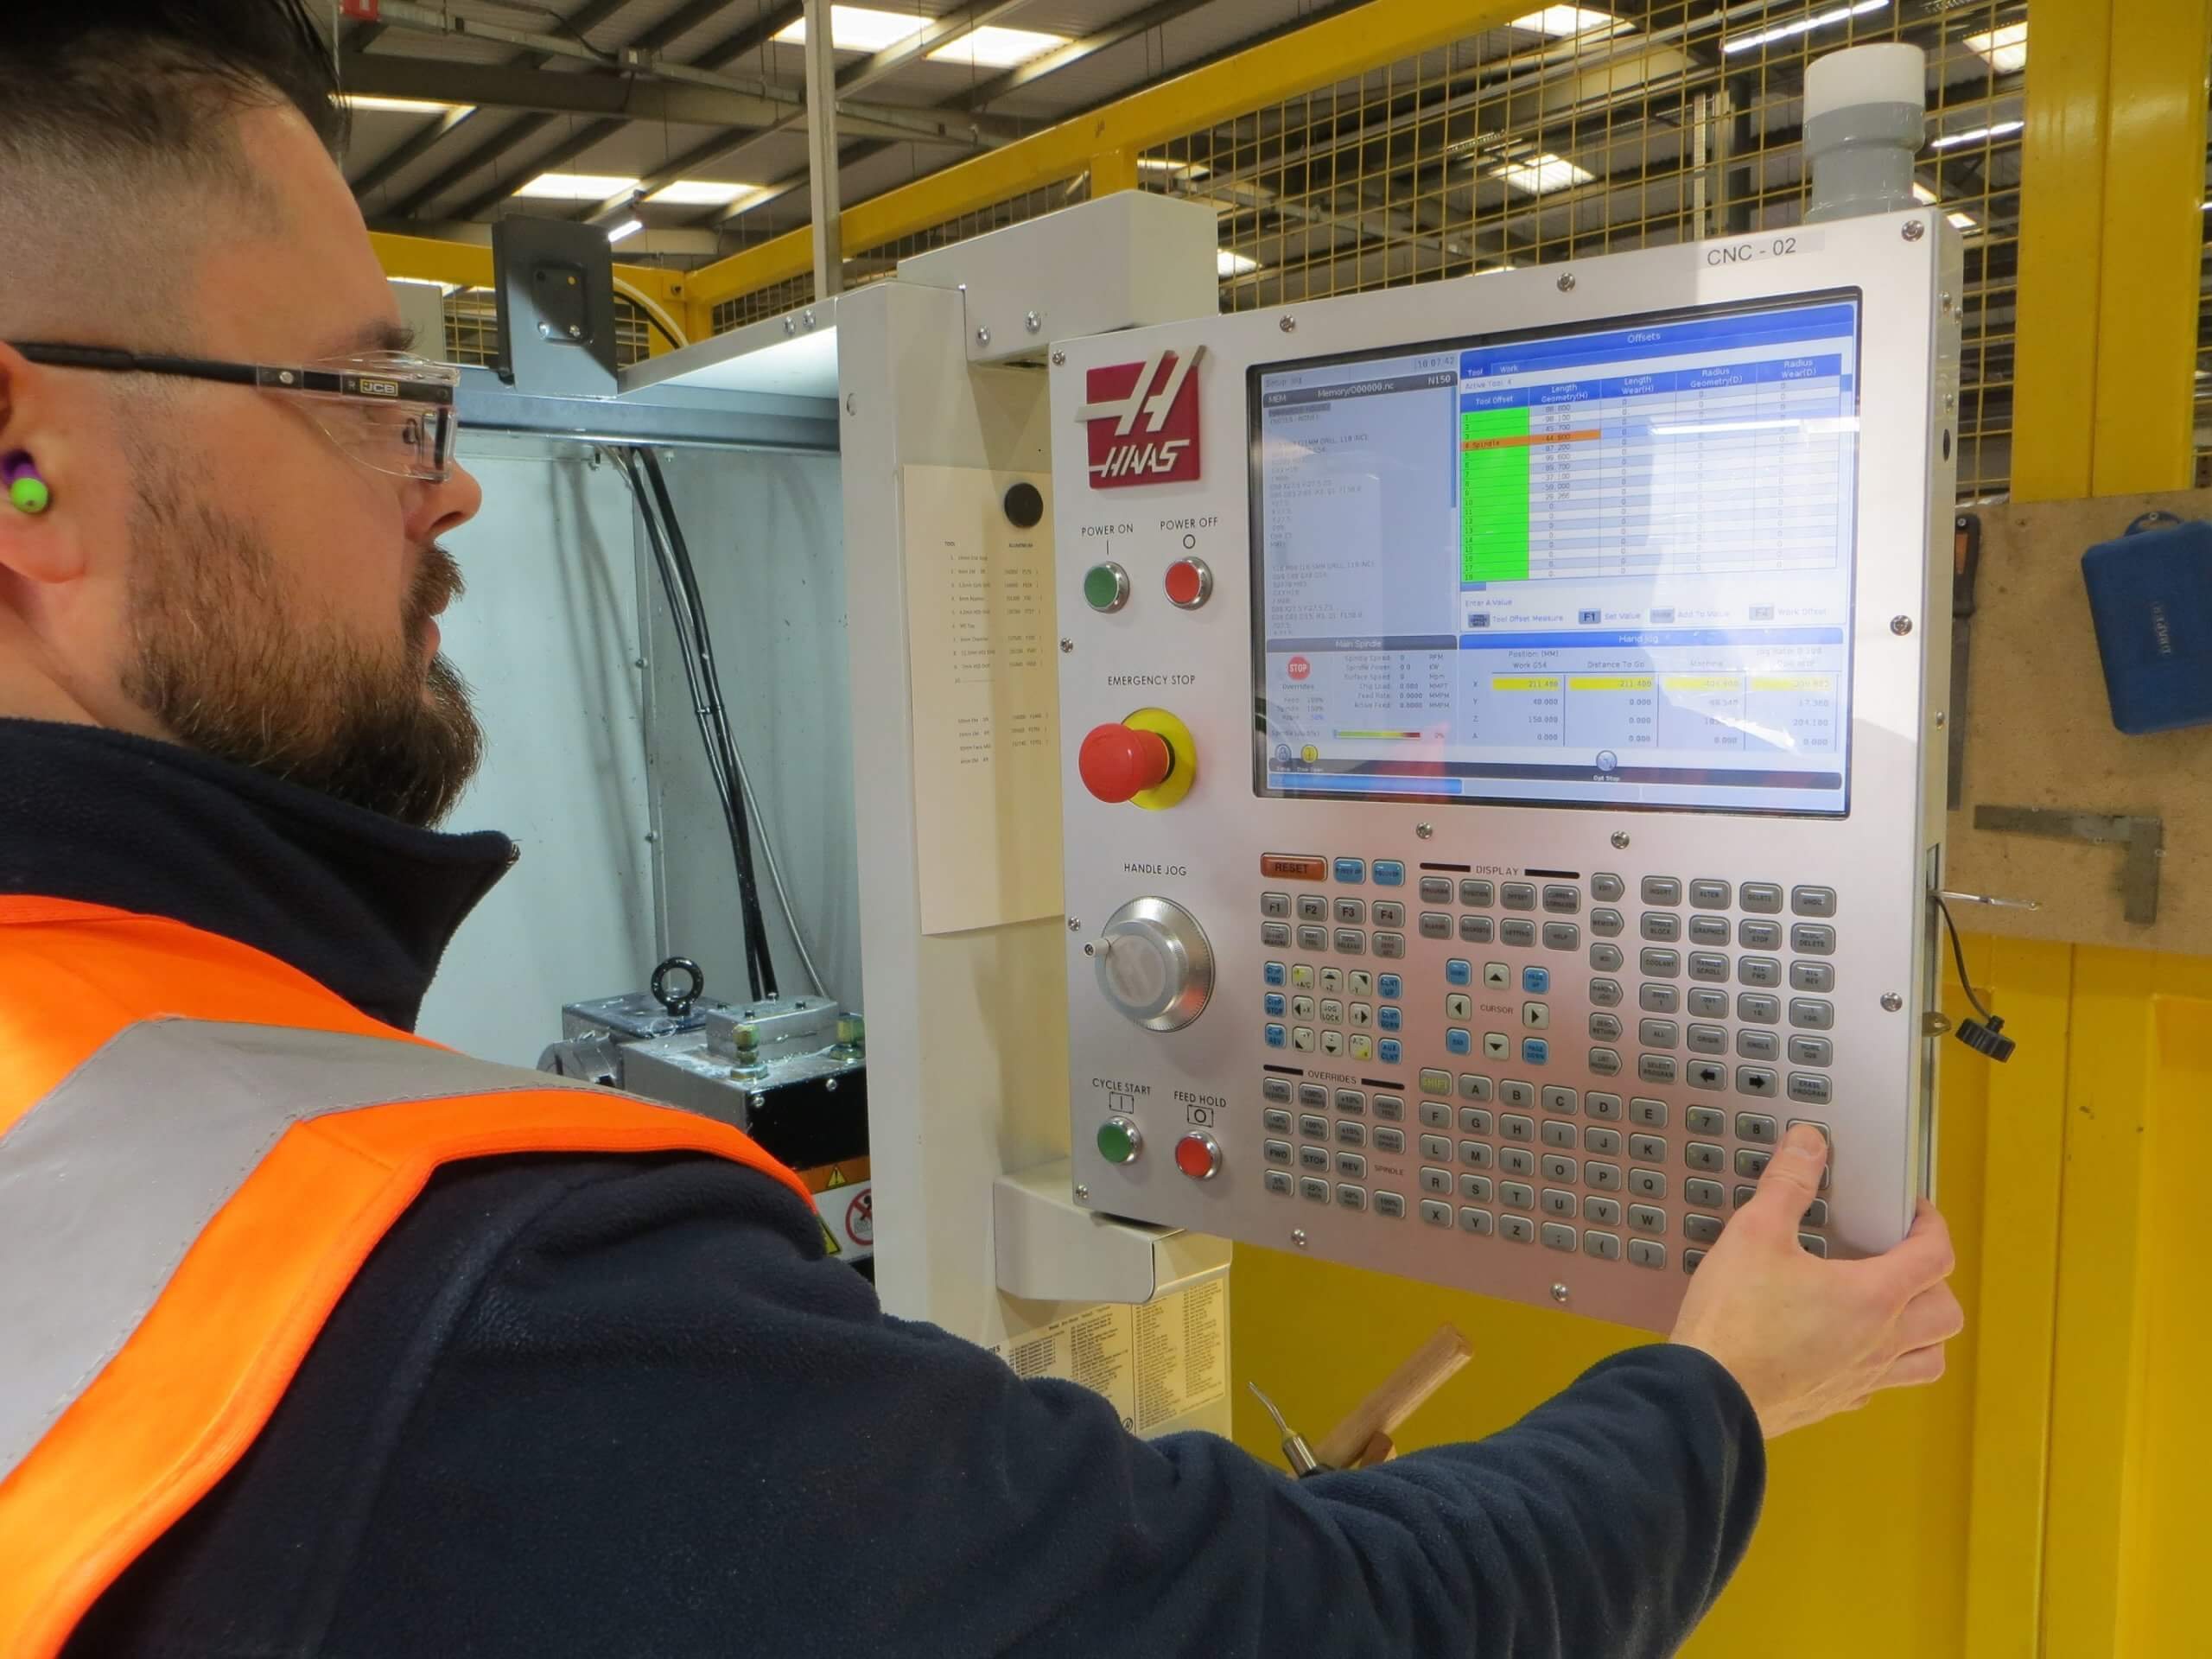 Barnsley manufacturer invests in speed and agility to boost productivity